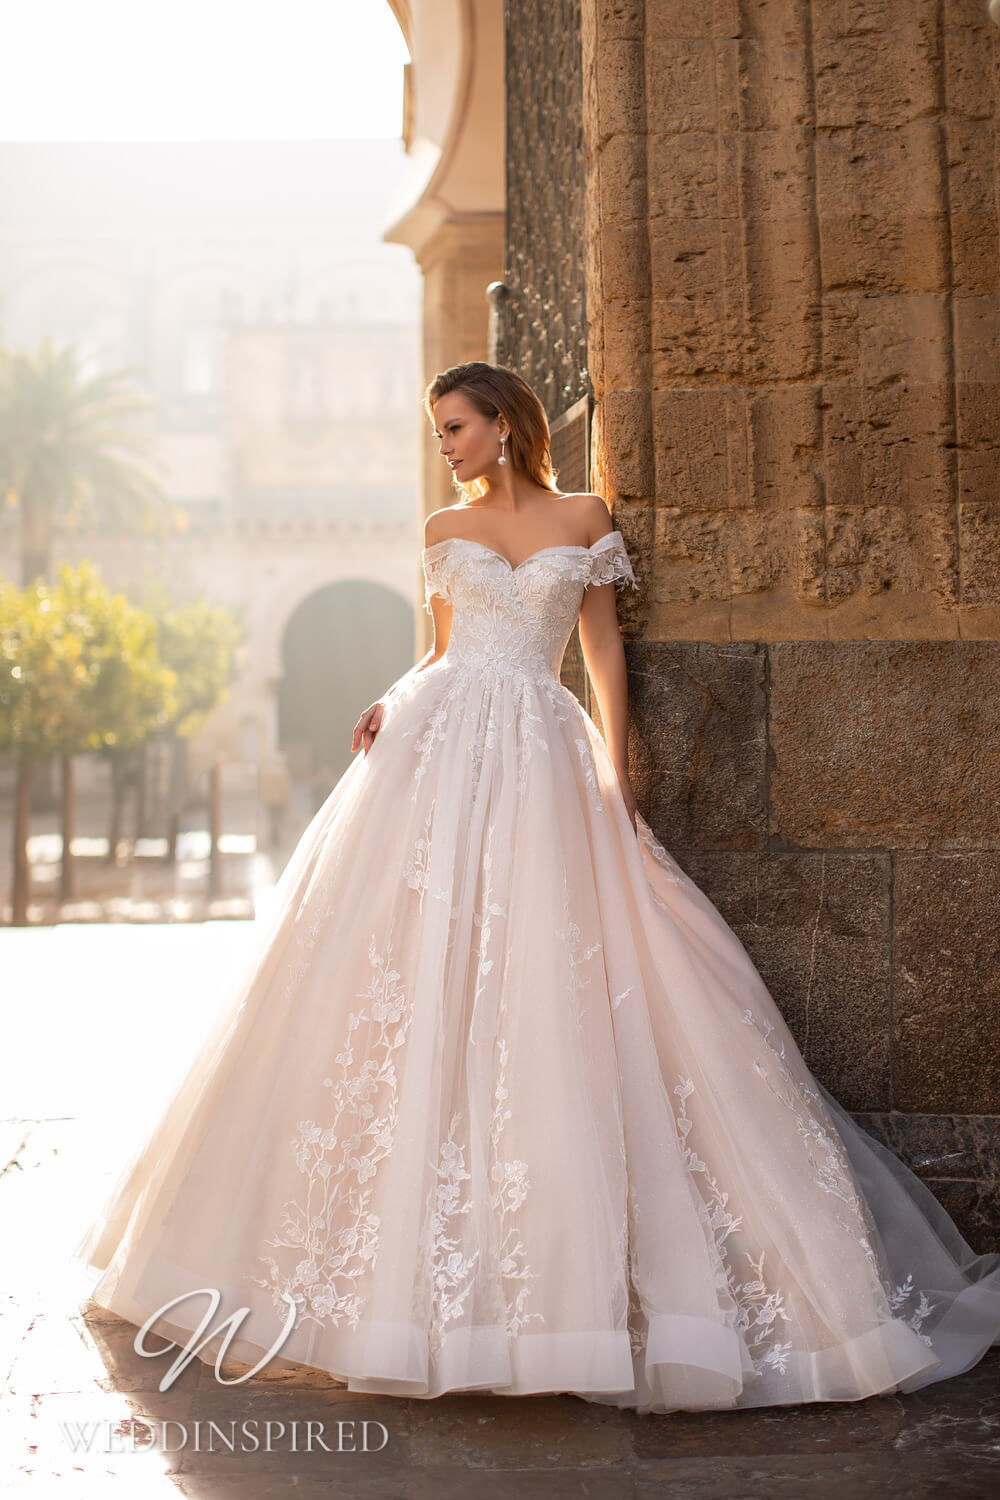 An Essential by Lussano 2021 lace and tulle off the shoulder princess wedding dress